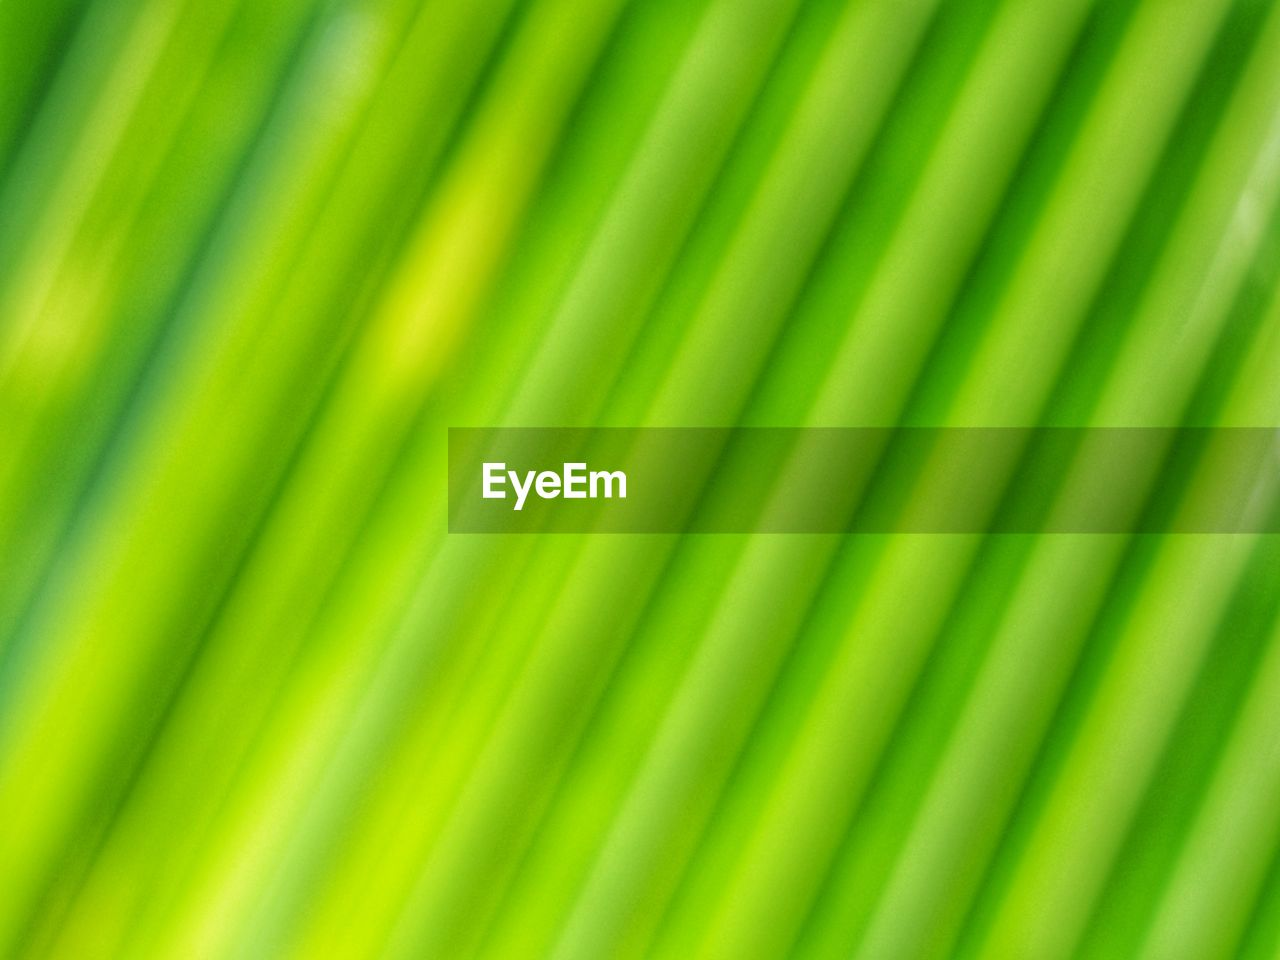 backgrounds, green color, full frame, no people, pattern, close-up, textured, palm leaf, palm tree, beauty in nature, leaf, nature, plant part, freshness, natural pattern, plant, growth, abstract, vibrant color, tropical climate, abstract backgrounds